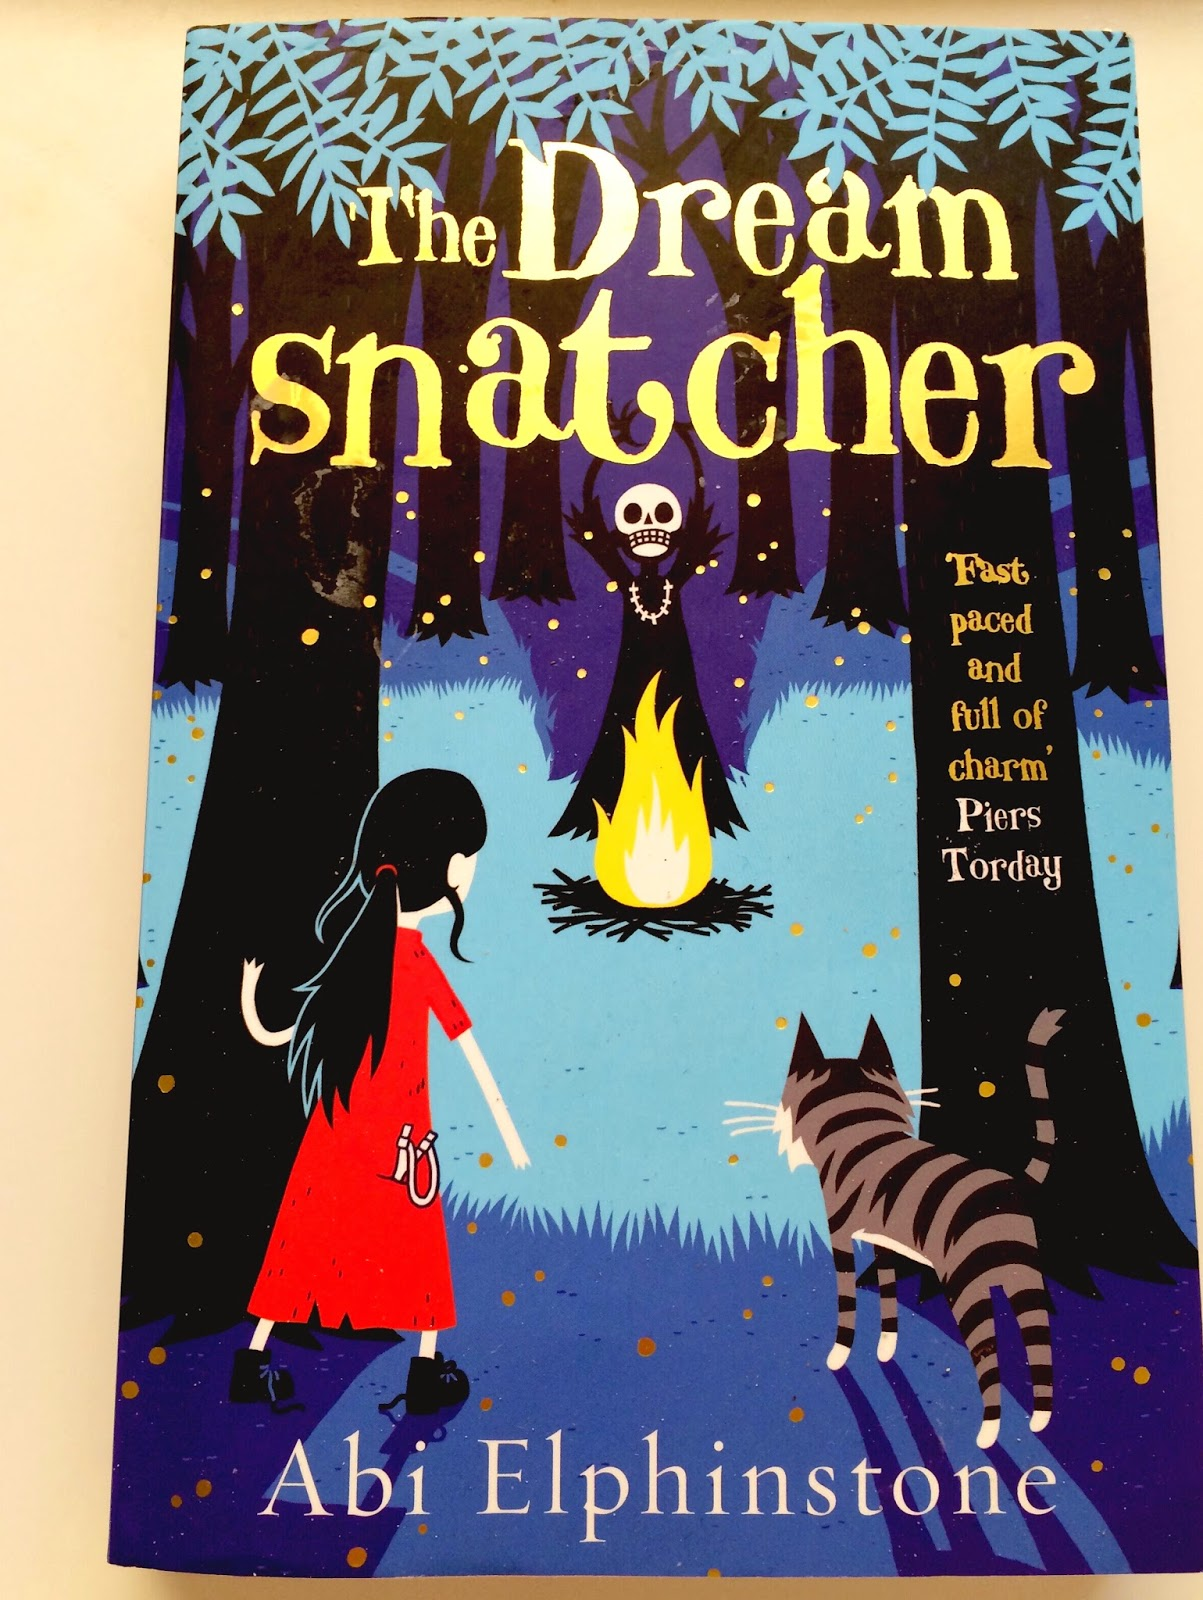 The dreamsnatcher paperback book